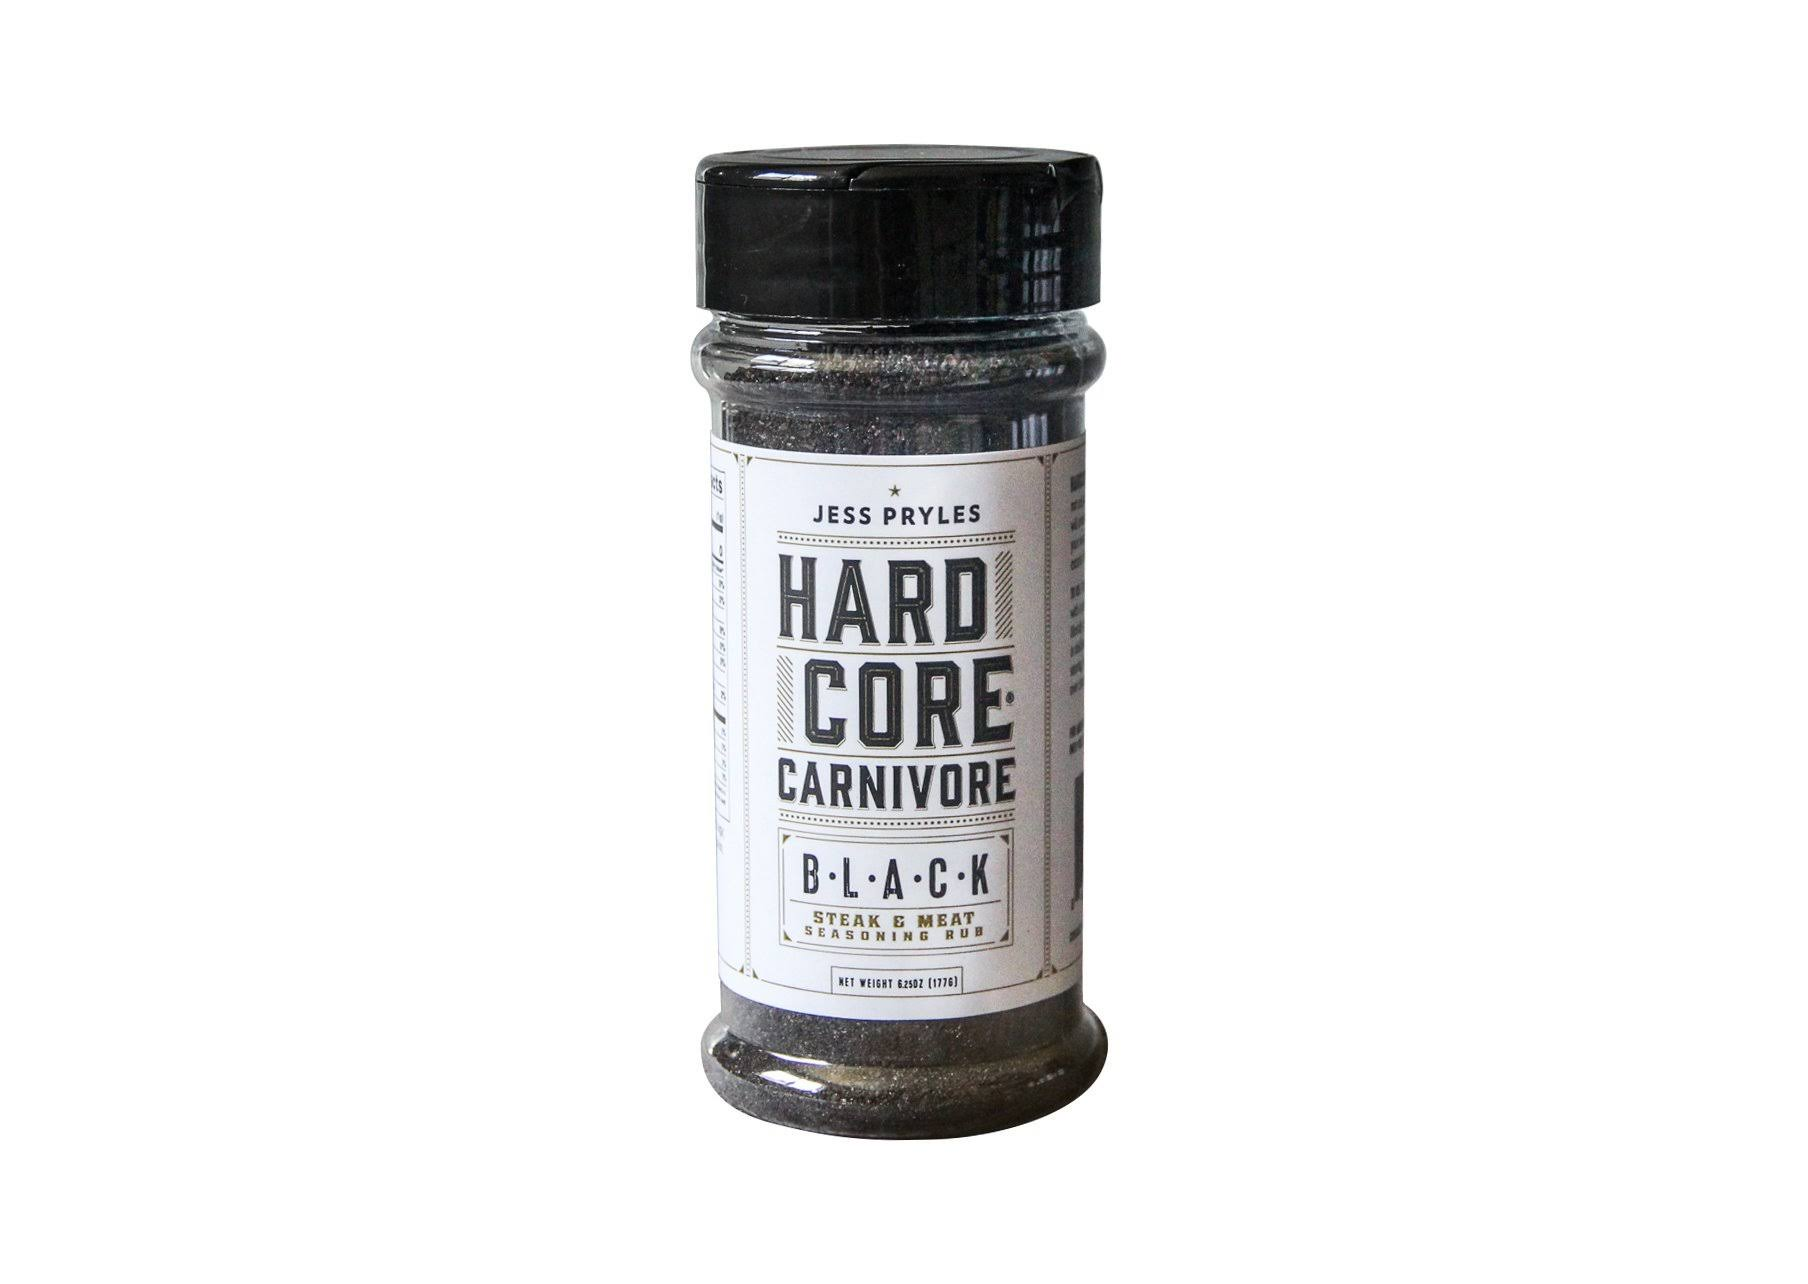 Hardcore Carnivore Black Steak Meat BBQ Seasoning